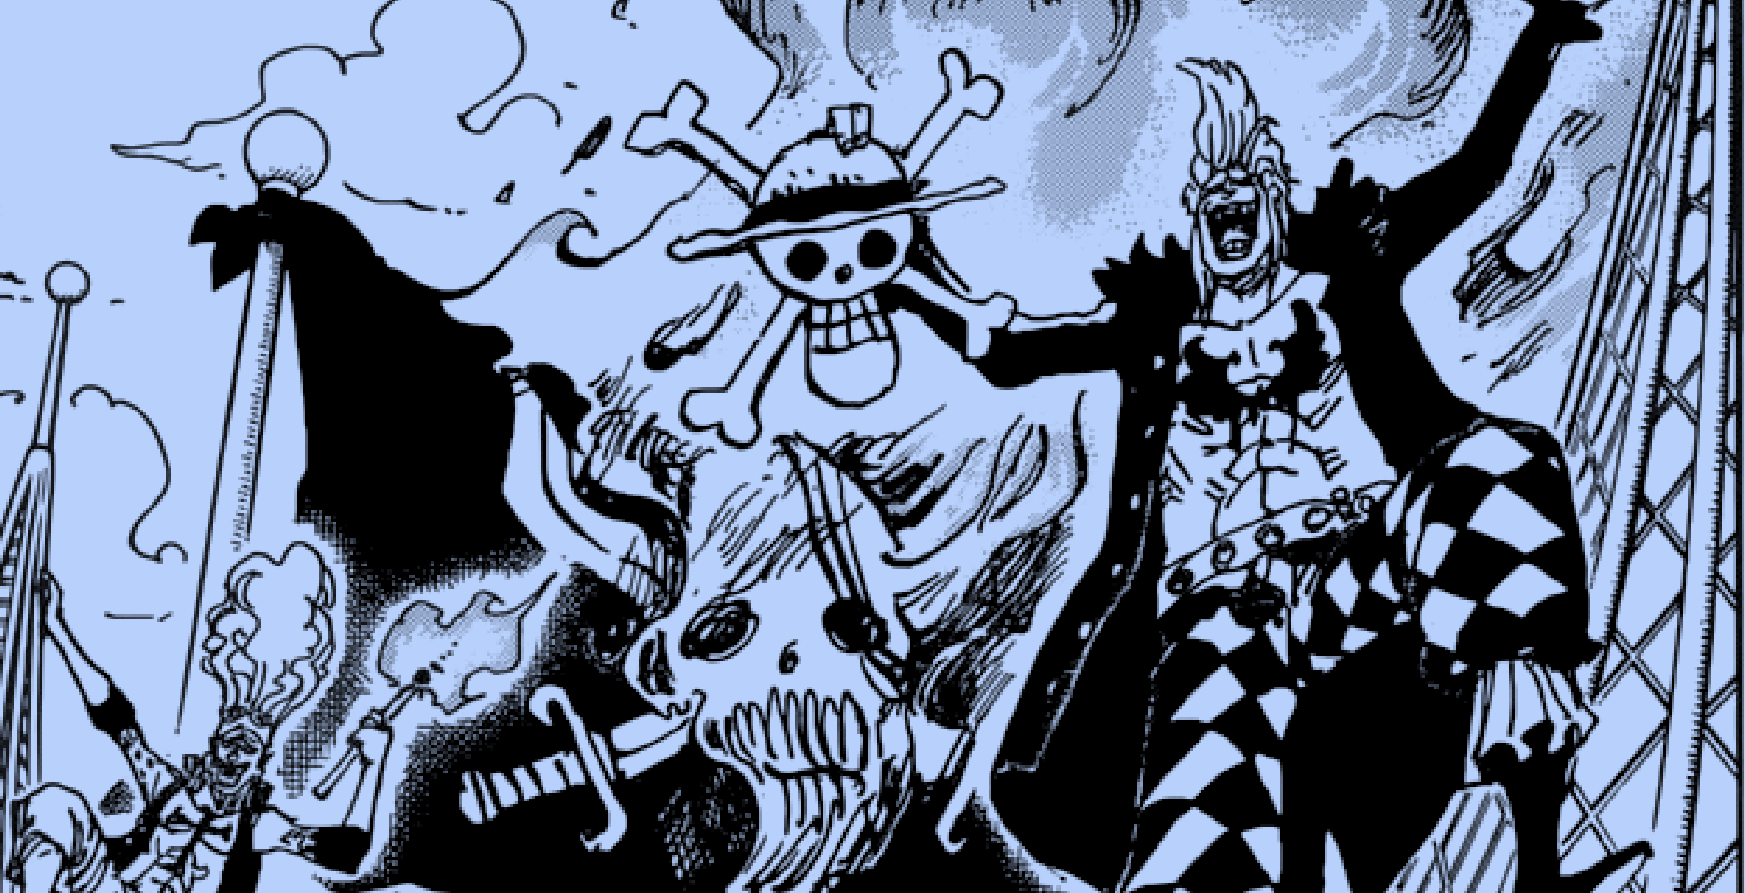 Shanks Vs Bartolomeo